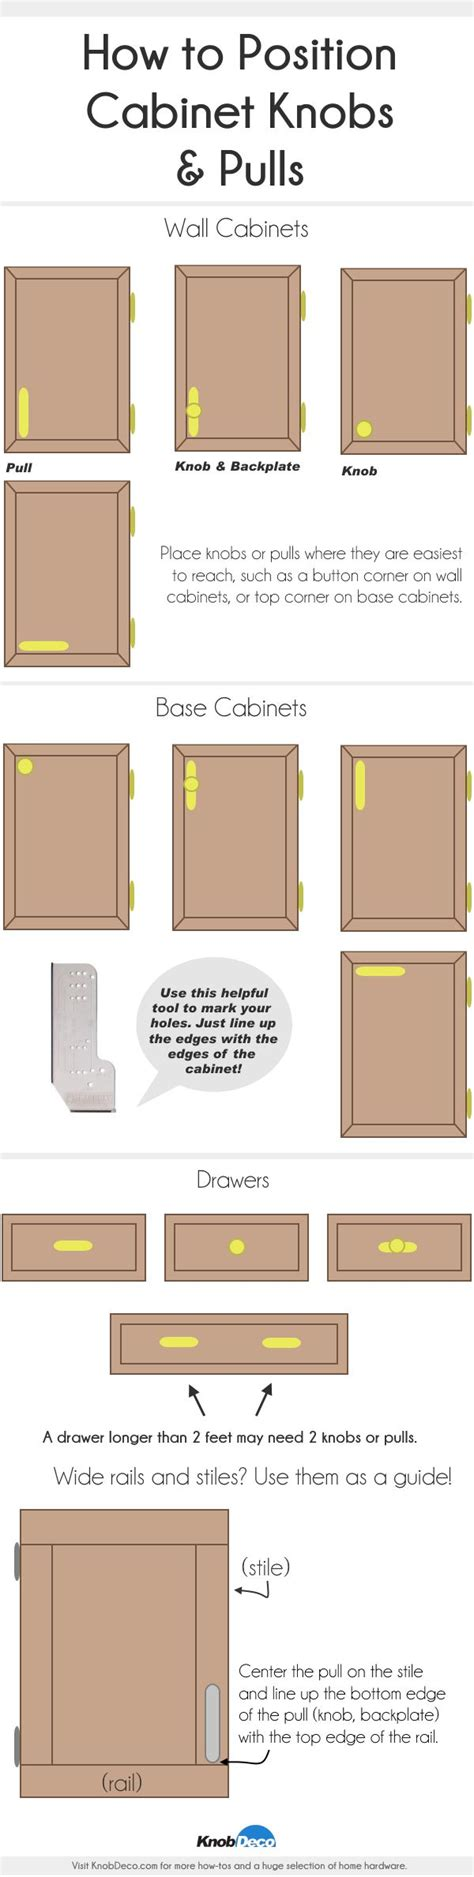 How To Position Cabinet Knobs For Installation #remodel